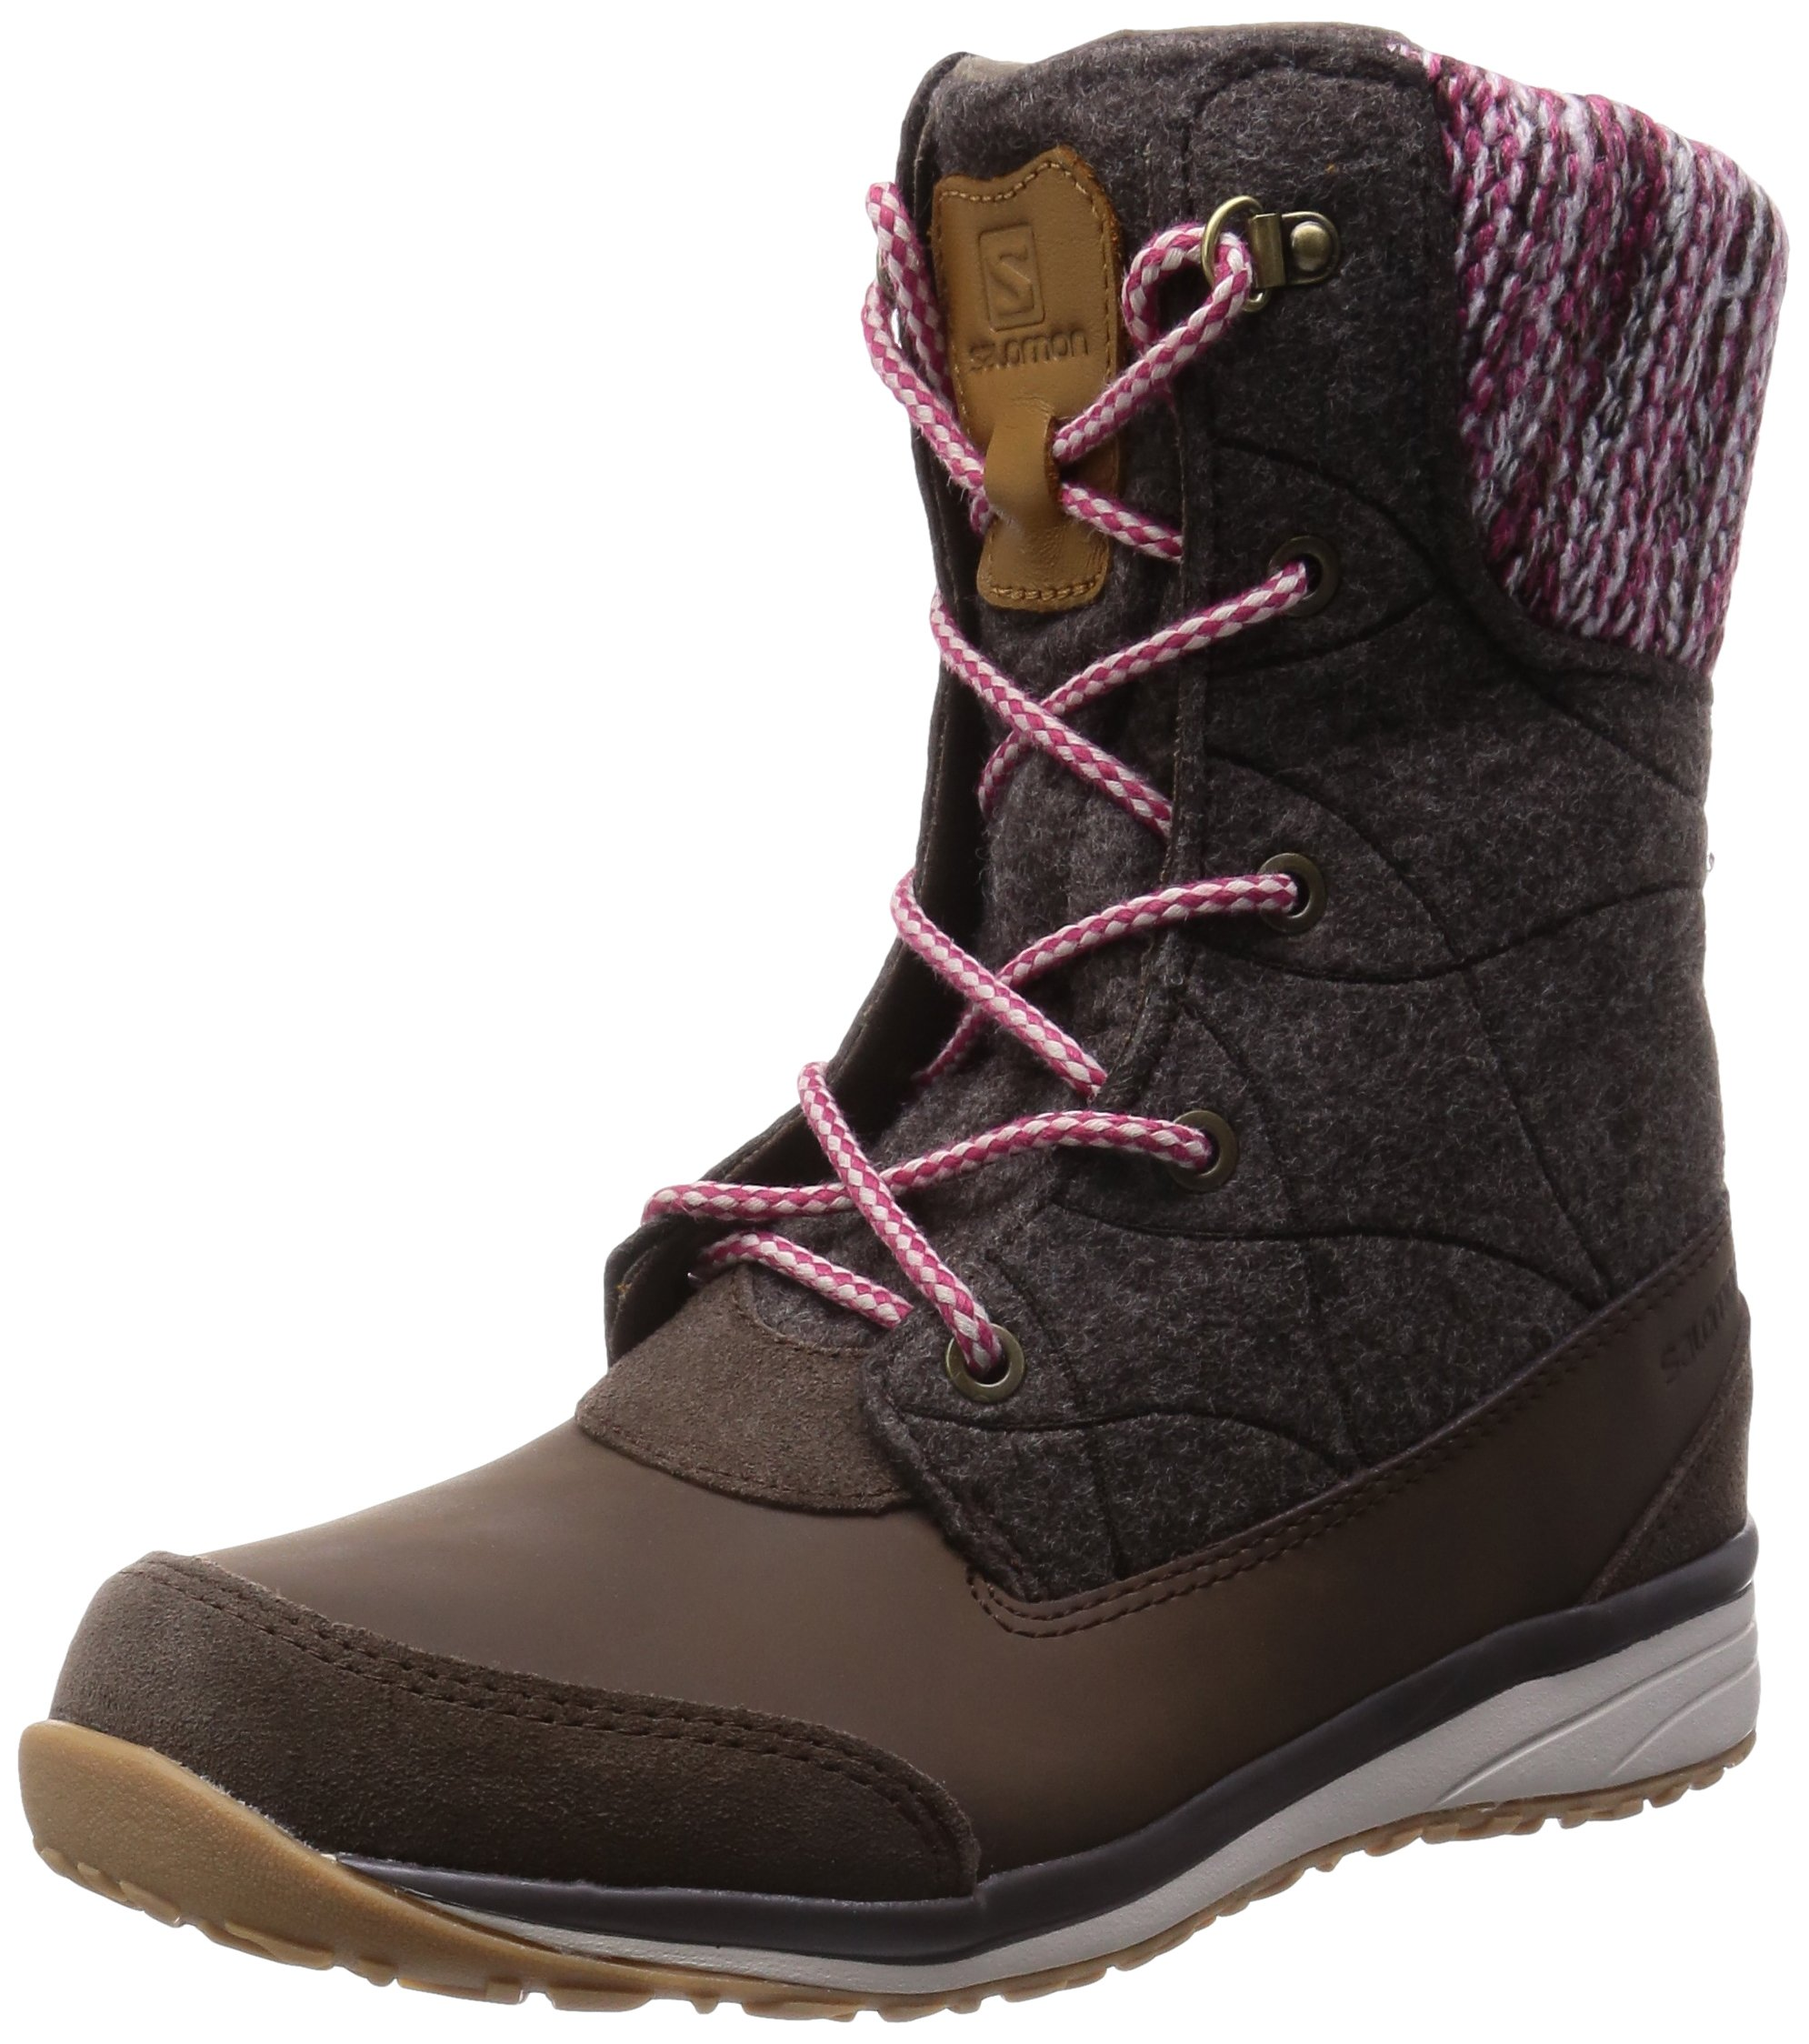 Salomon Women's Hime Mid Snow Boot, Absolute Brown-X/Absolute Brown-X/Light Grey, 7.5 D US by Salomon